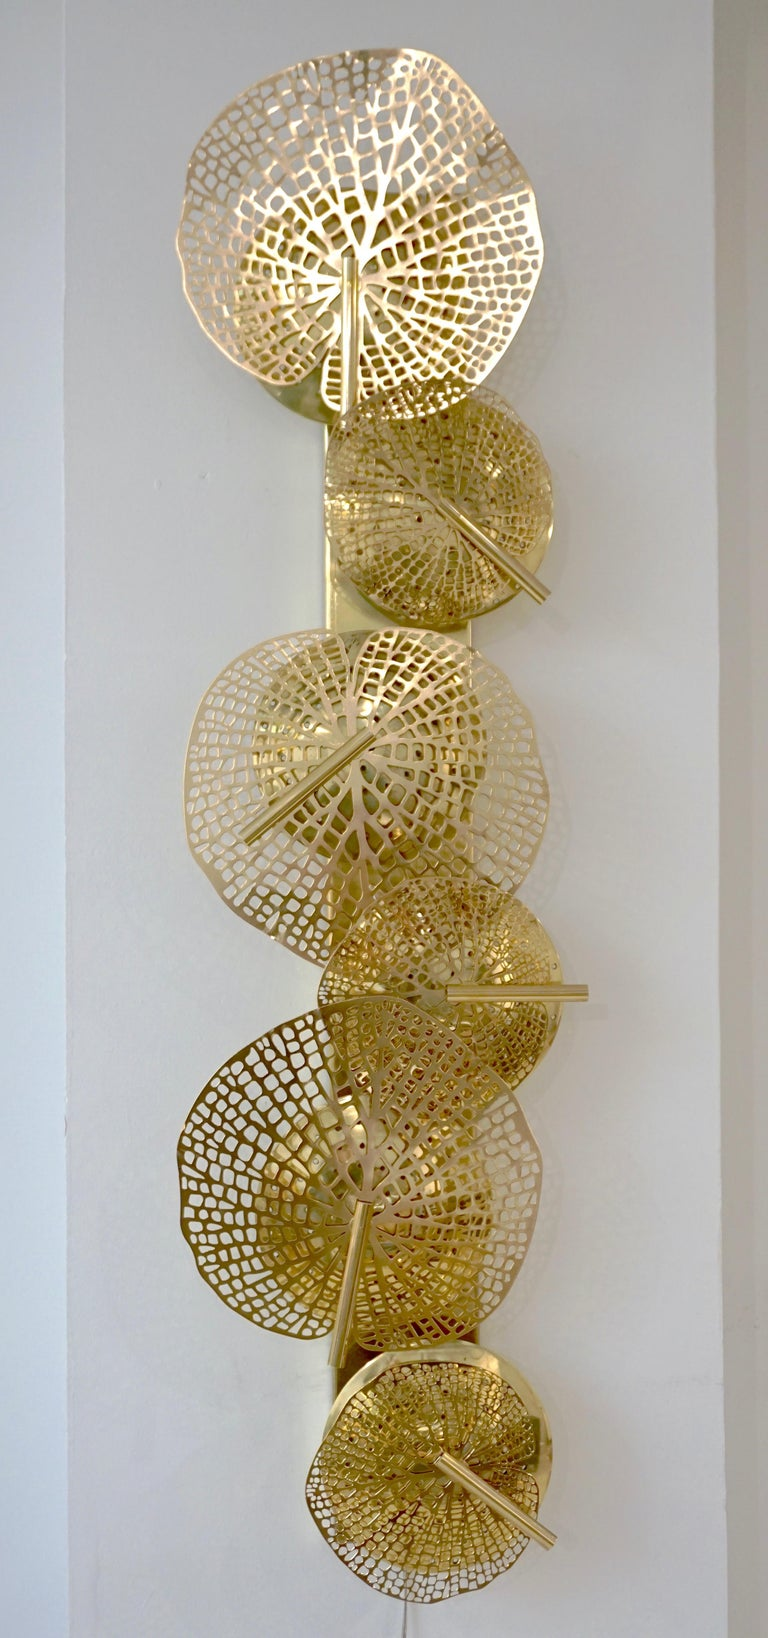 Contemporary Organic Italian Art Design Pair of Perforated Brass Leaf Sconces For Sale 11